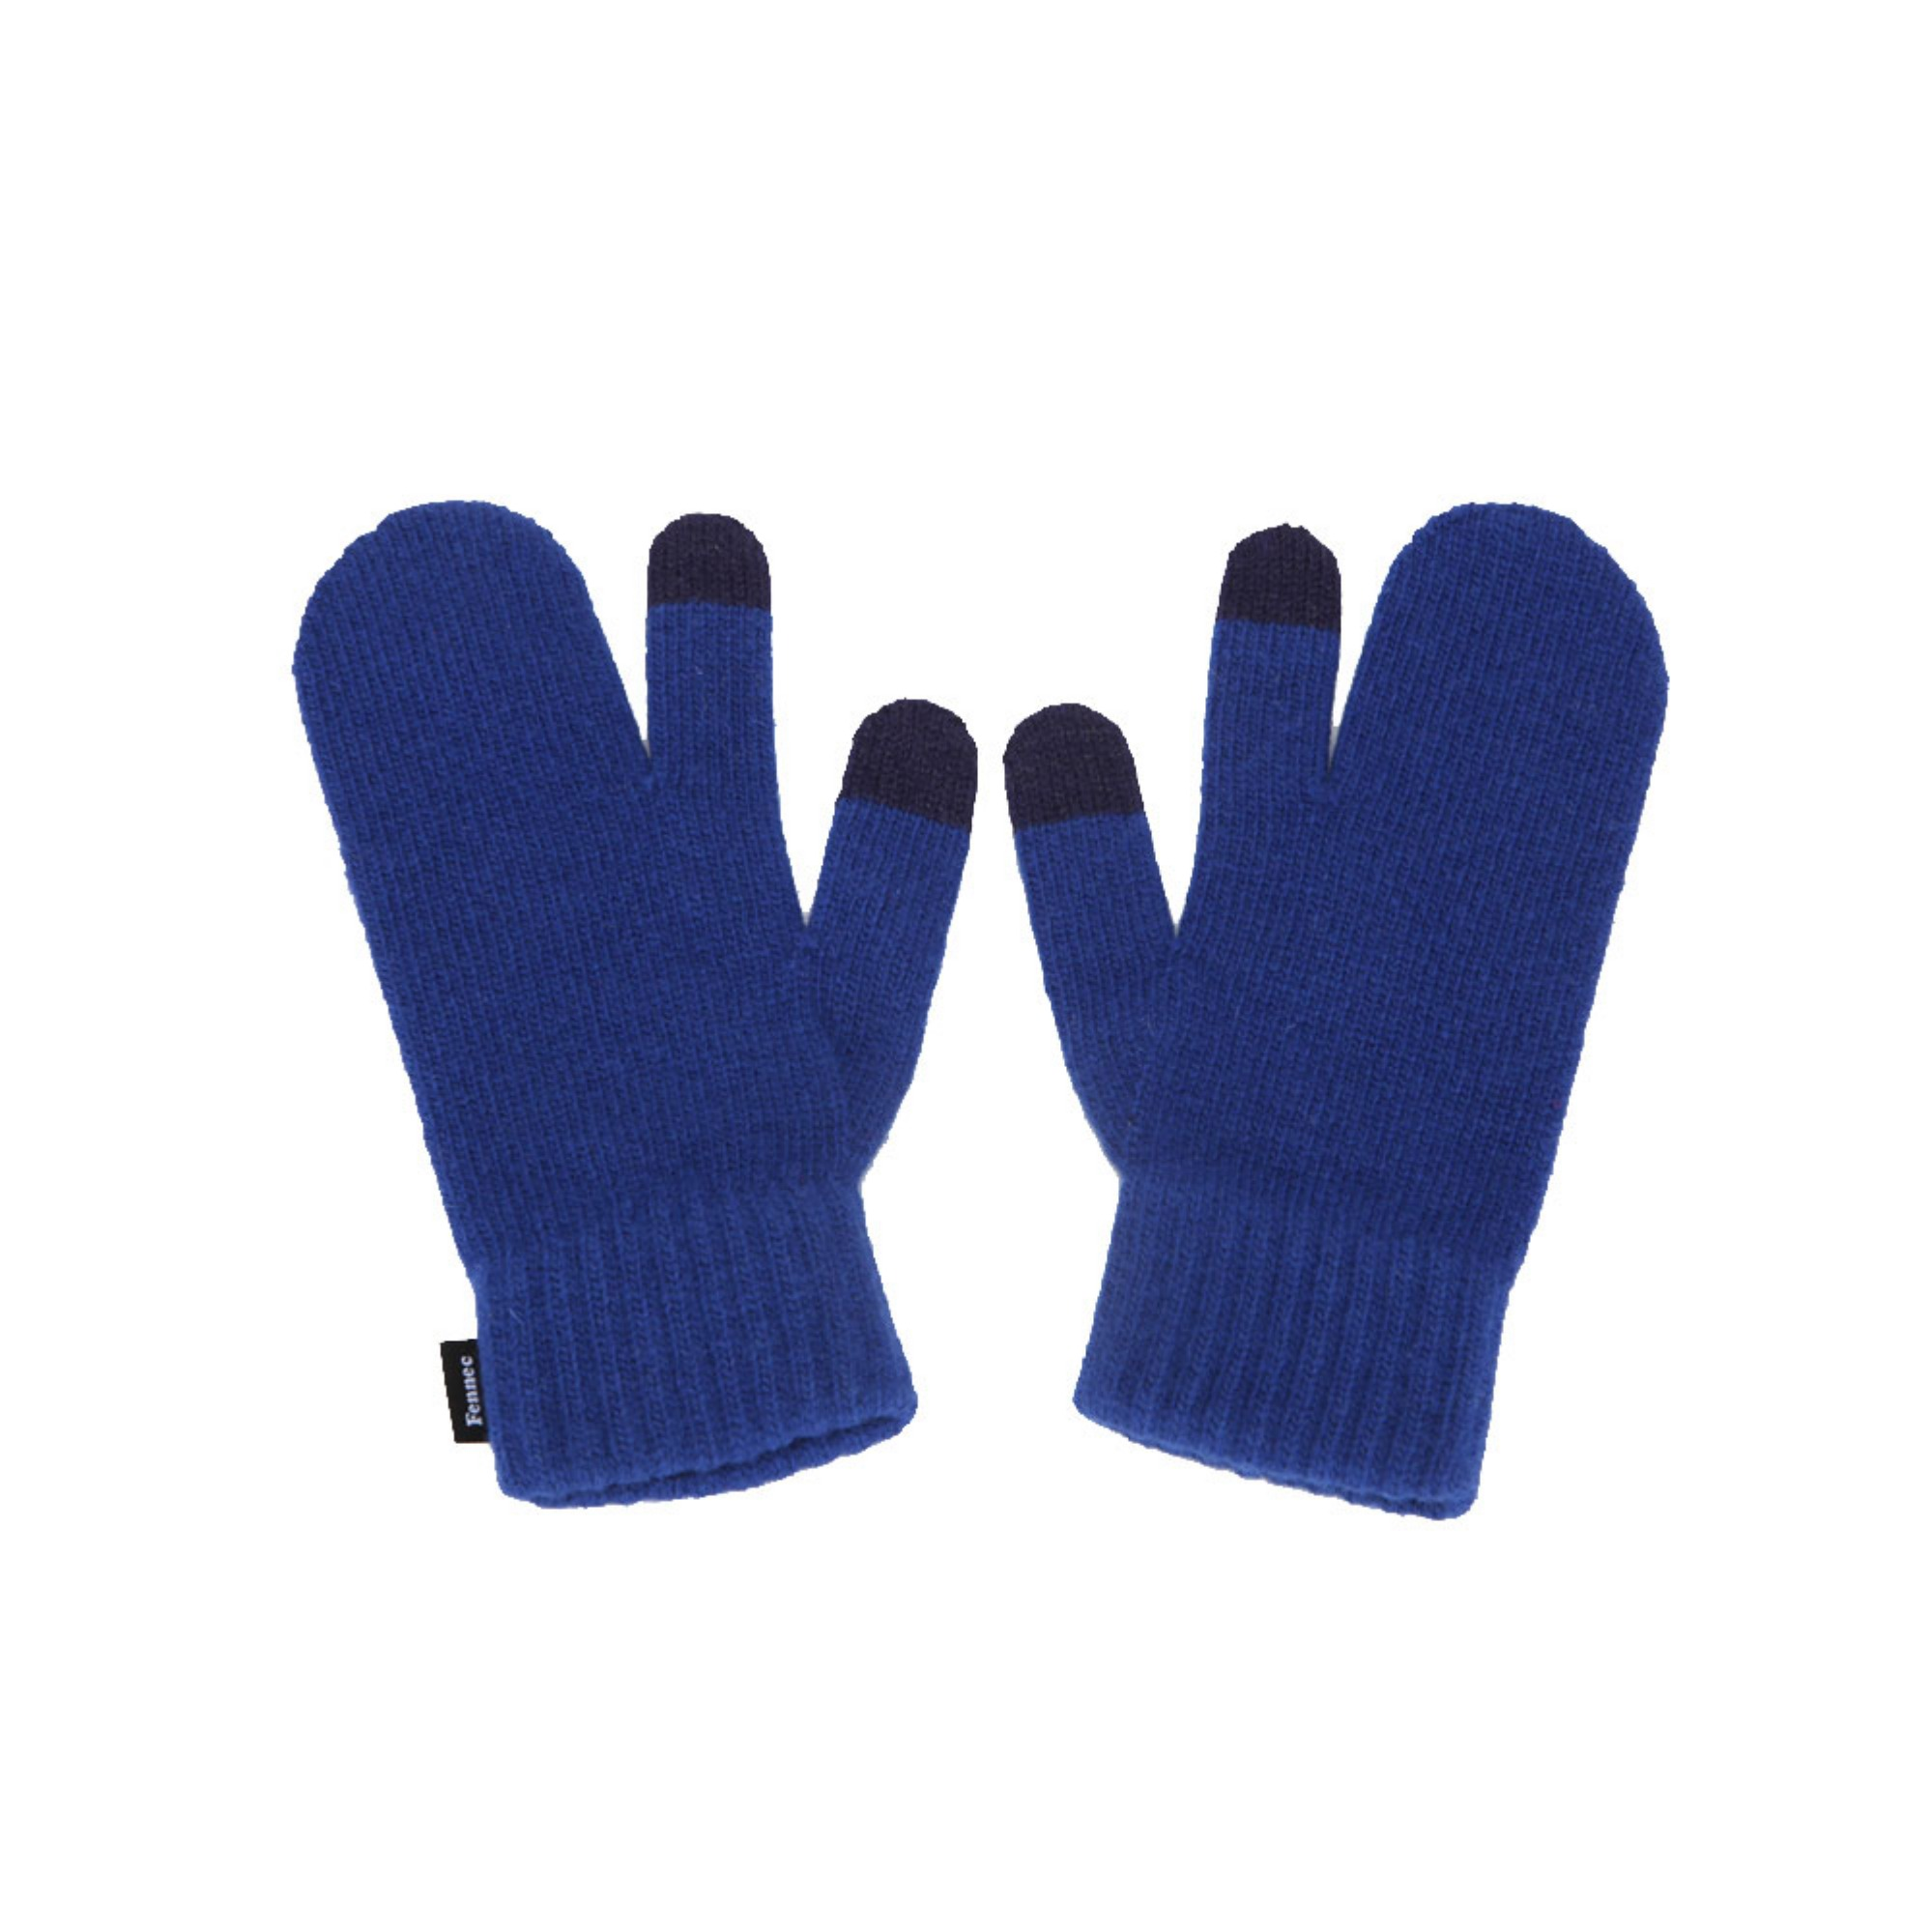 KNIT TIMI GLOVES - BLUE